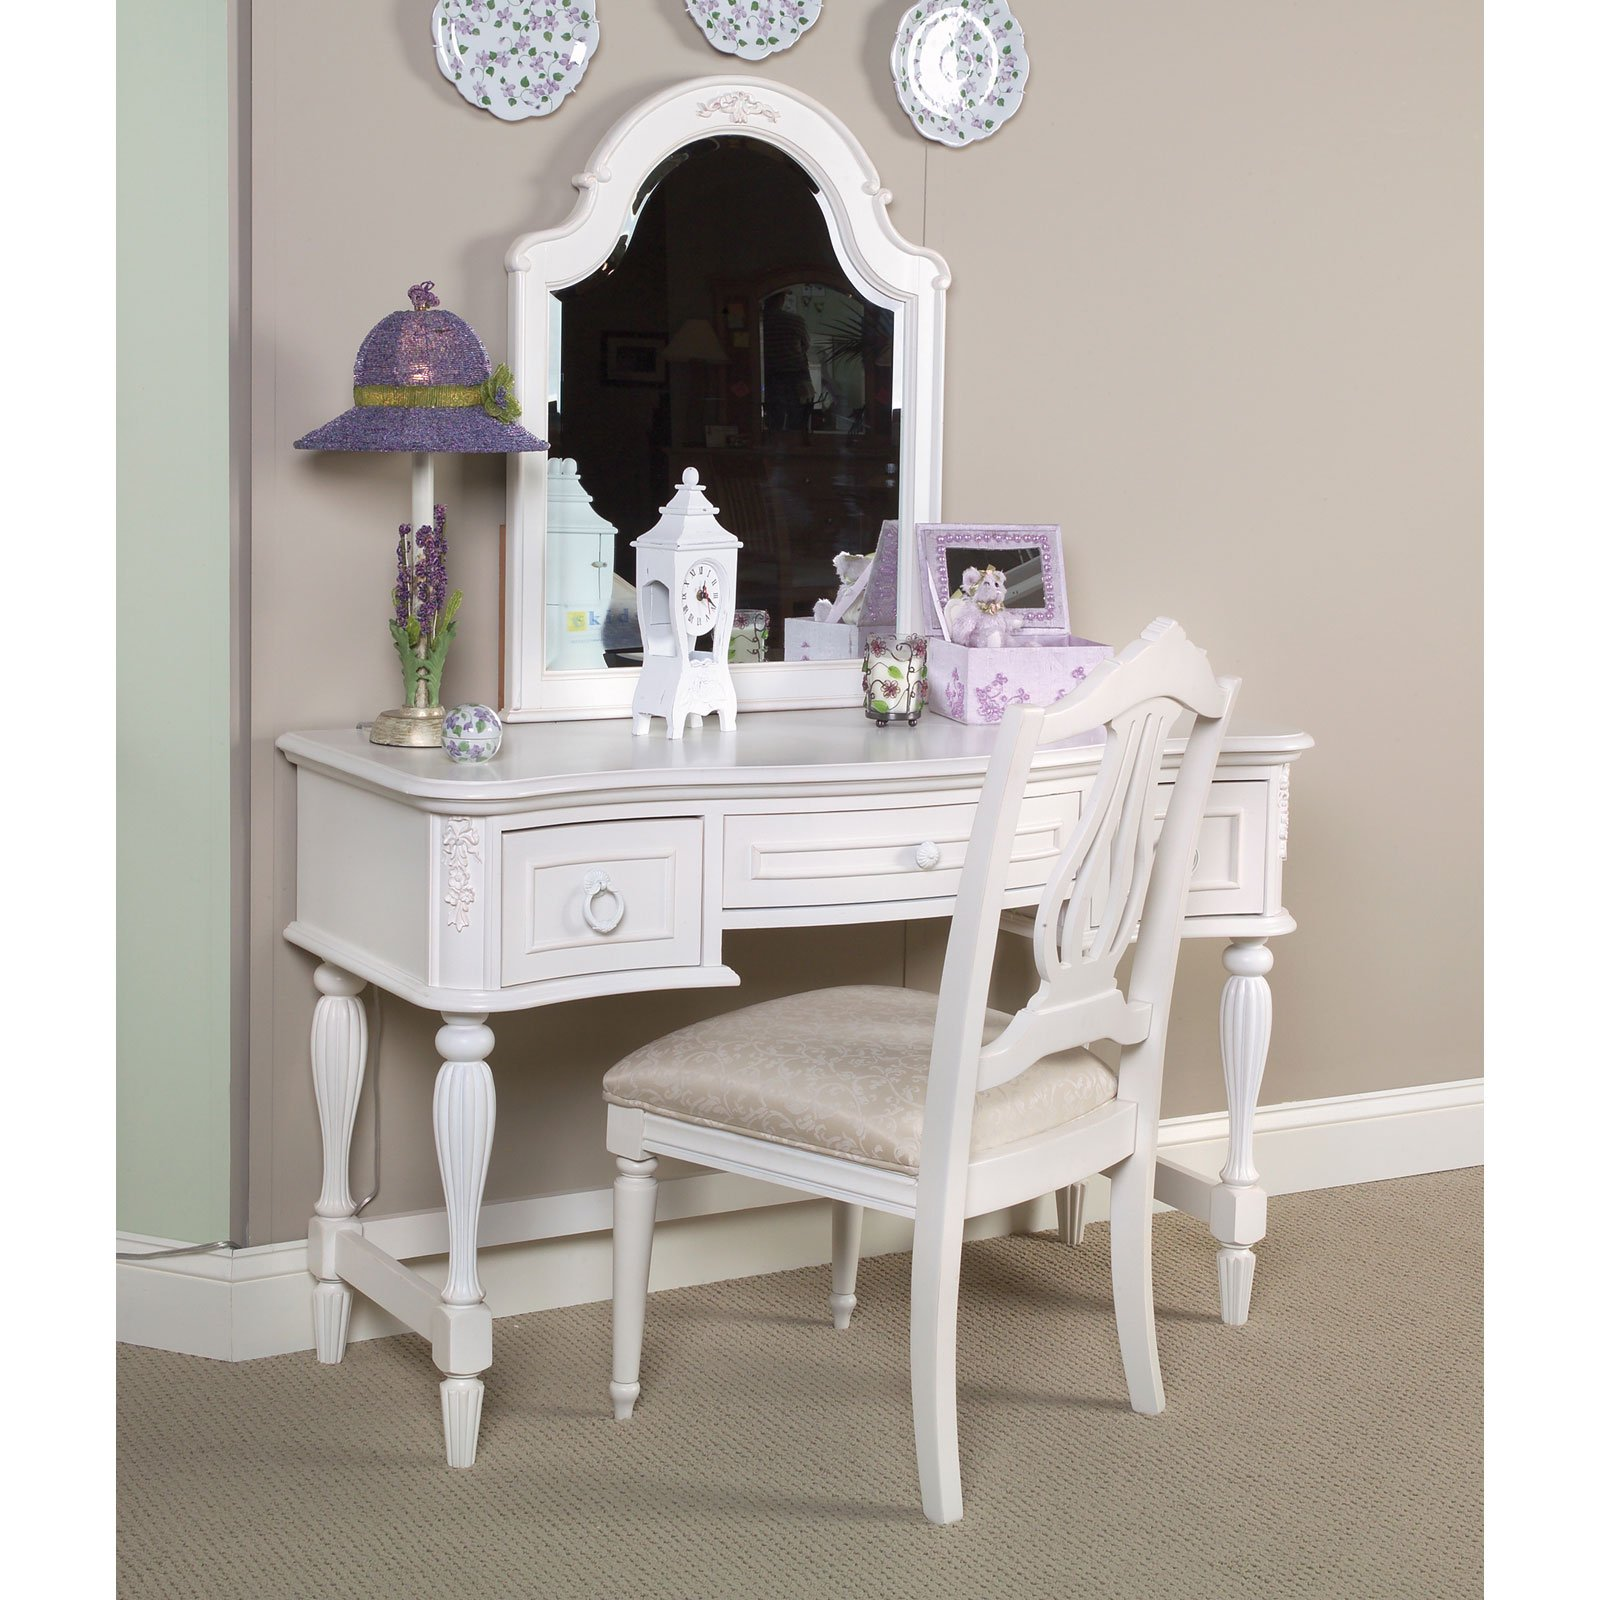 Discount Bedroom Vanity | Mirrored Vanity Set | Small Vanity Desk